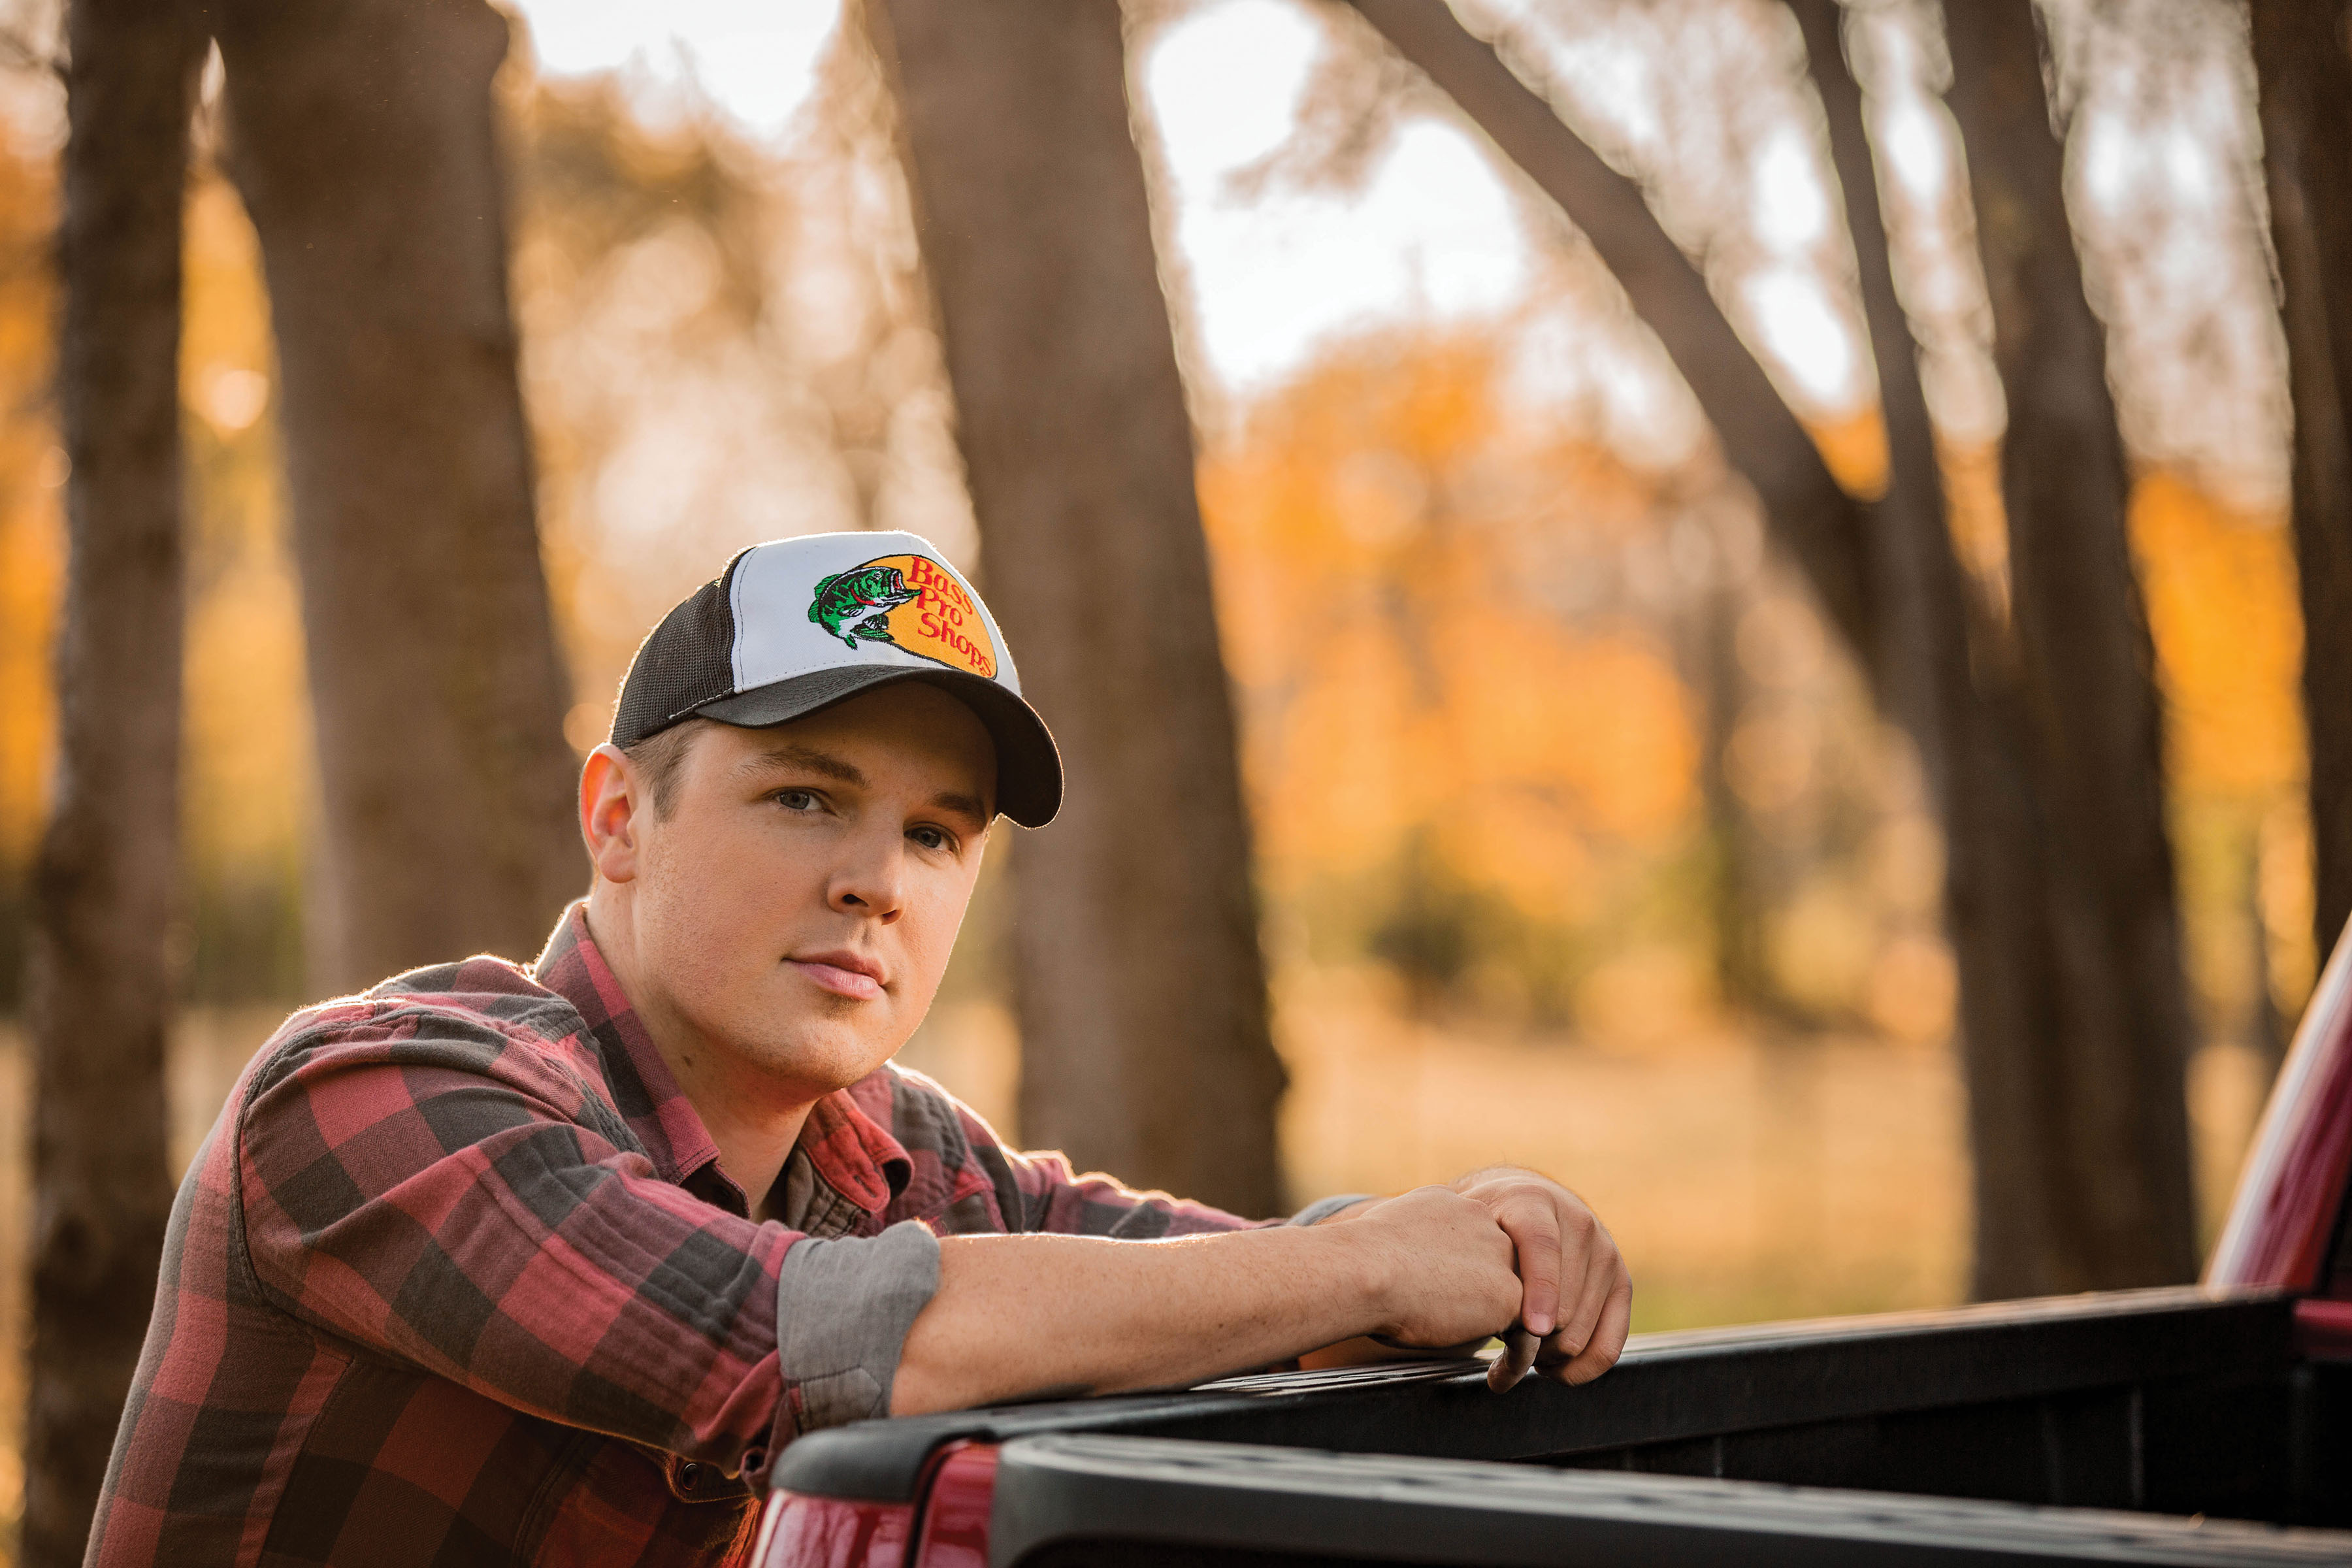 TRAVIS DENNING RELEASES HIS DEBUT SINGLE!